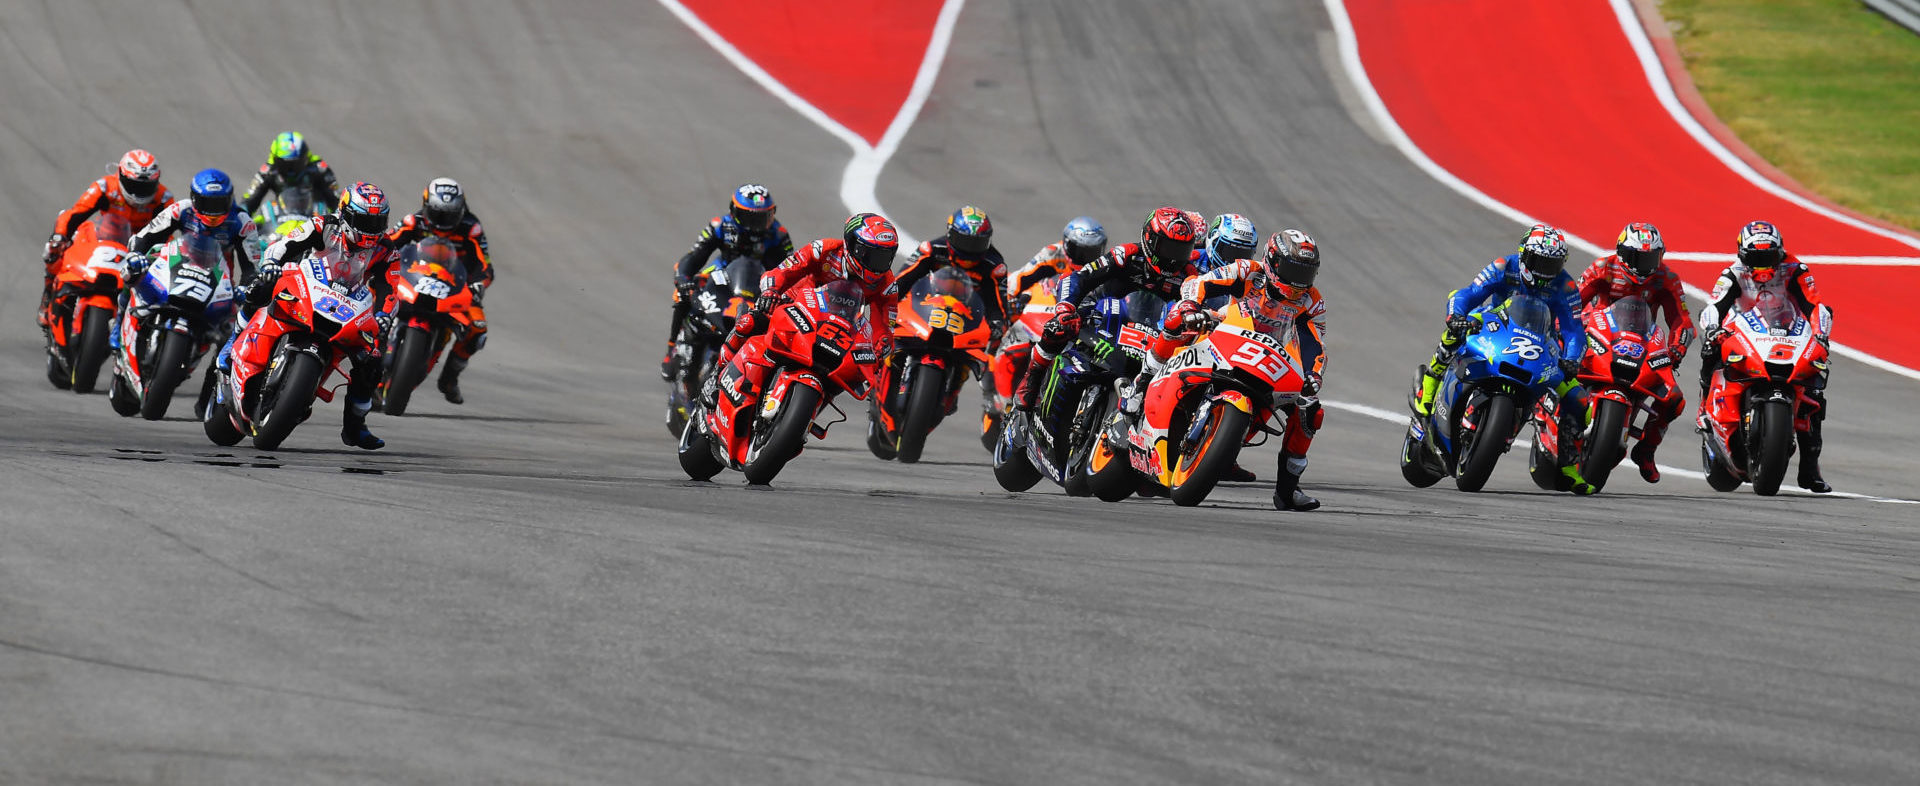 The start of the MotoGP race at COTA. Photo courtesy Michelin.